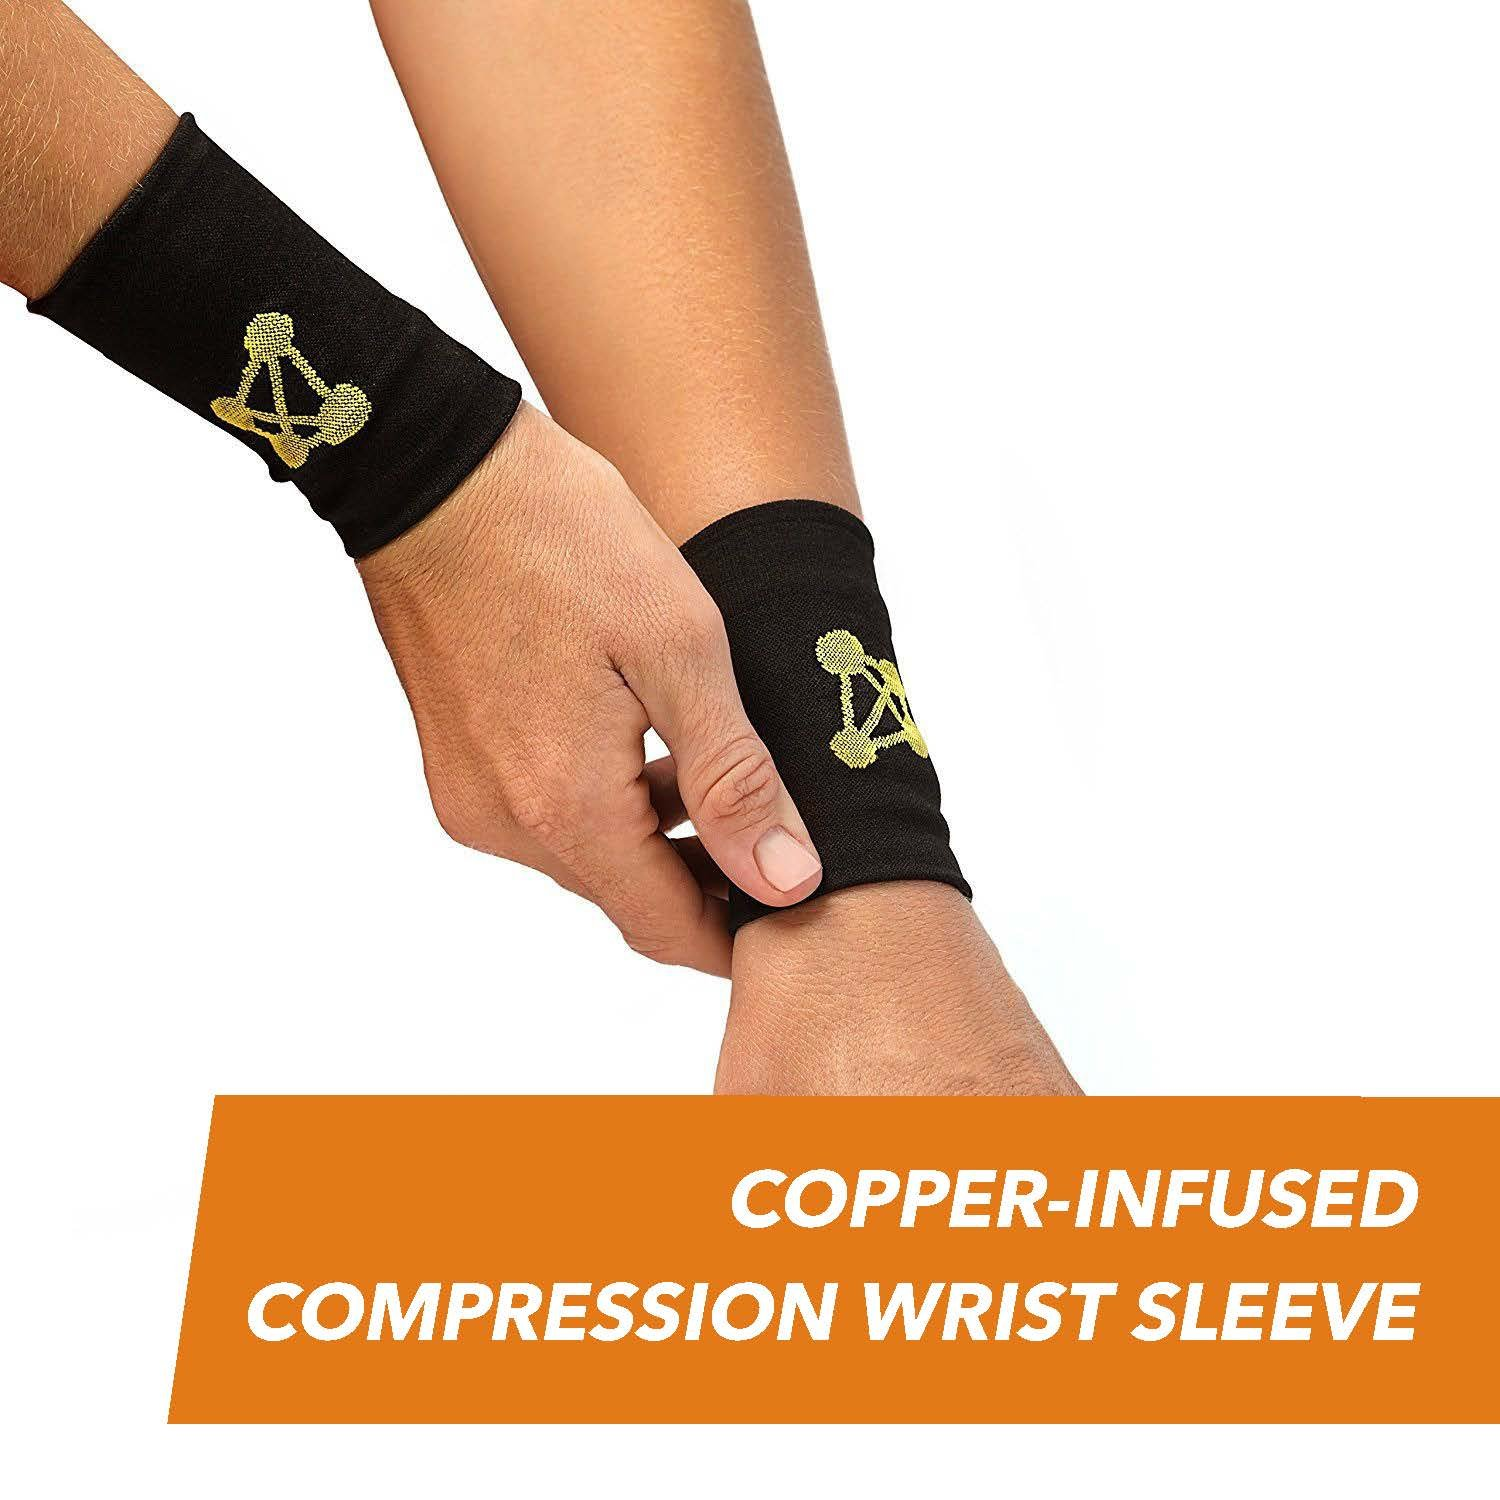 CopperJoint - Compression Wrist Sleeves, Pair (XL) by CopperJoint (Image #1)